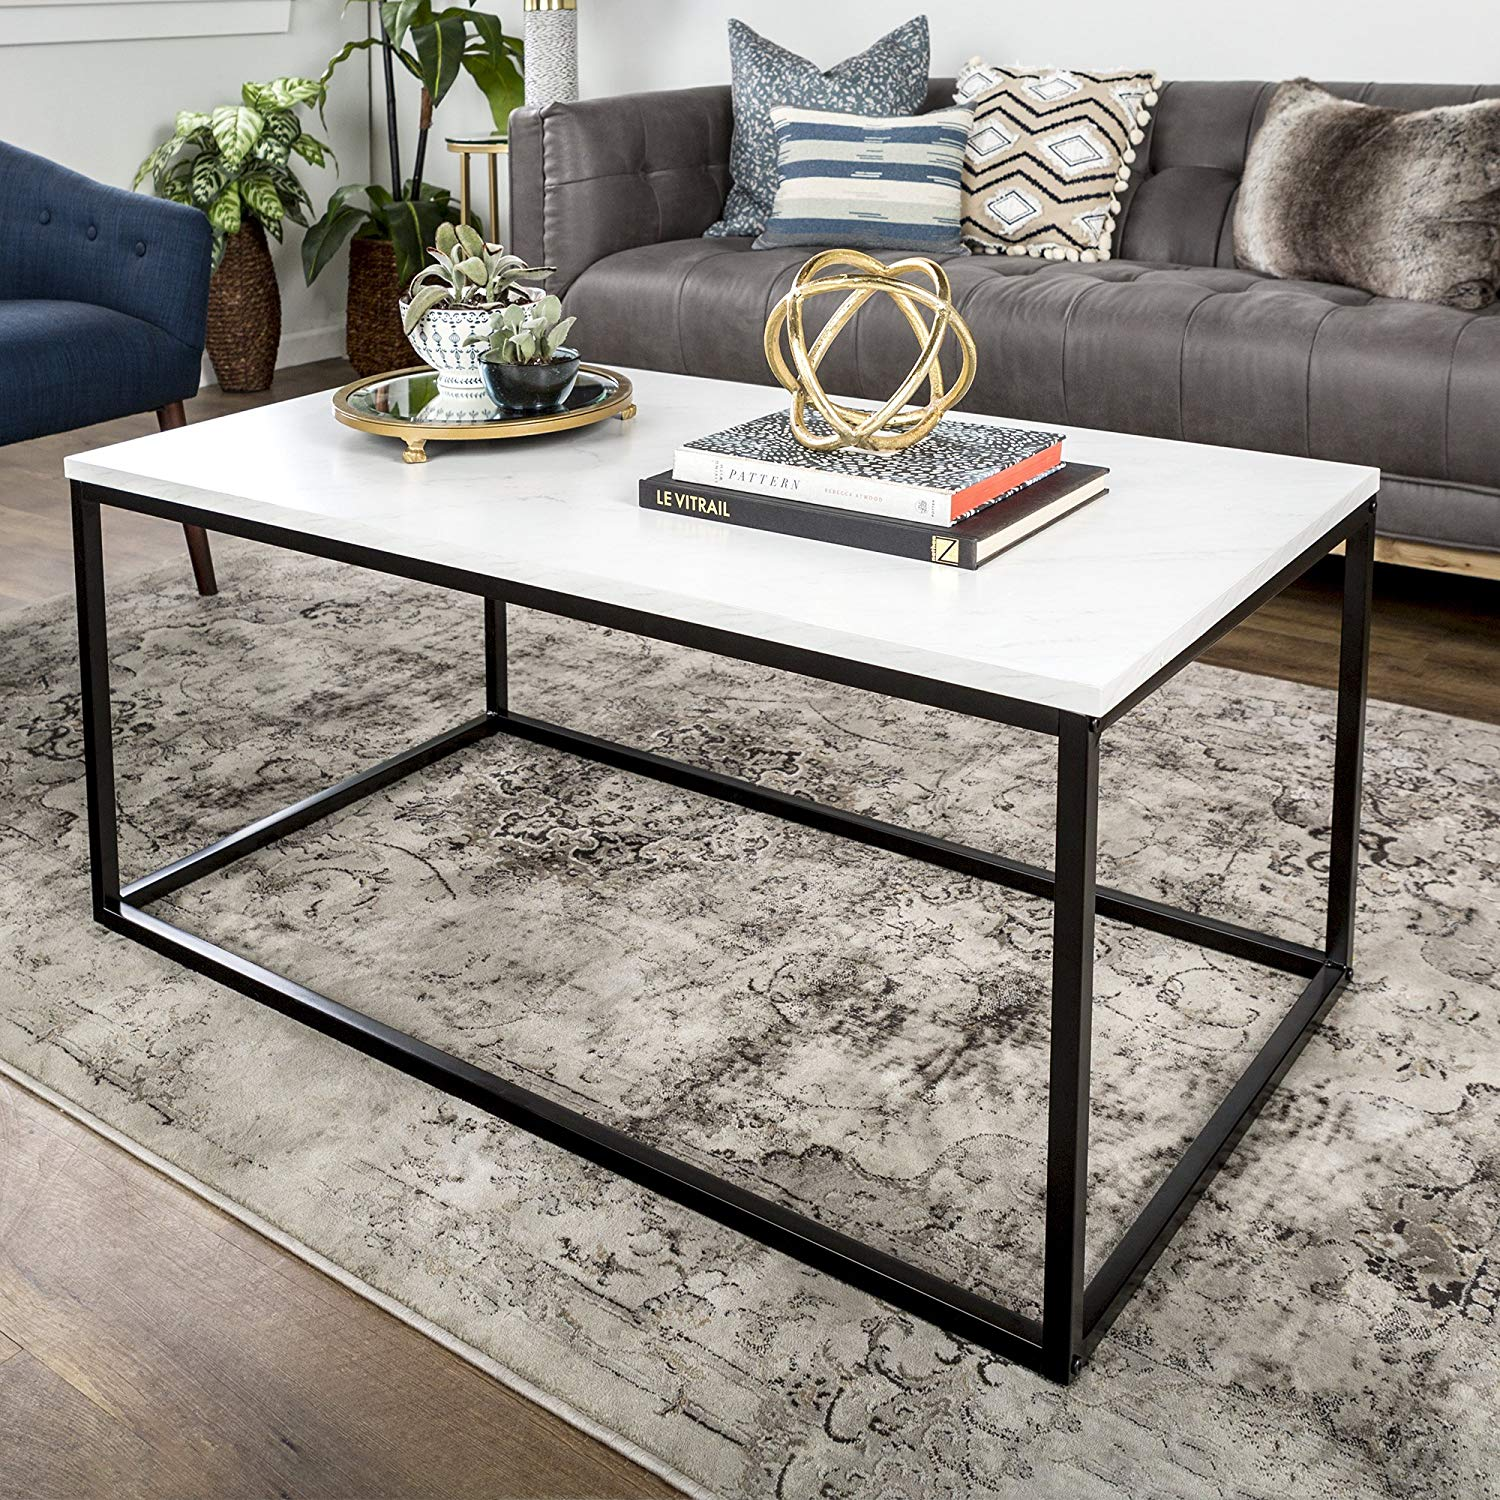 furniture mixed material coffee table marble accent kitchen dining remodel carpet bar wine rack decoration ideas for parties black mirrored nightstand uttermost round end tables